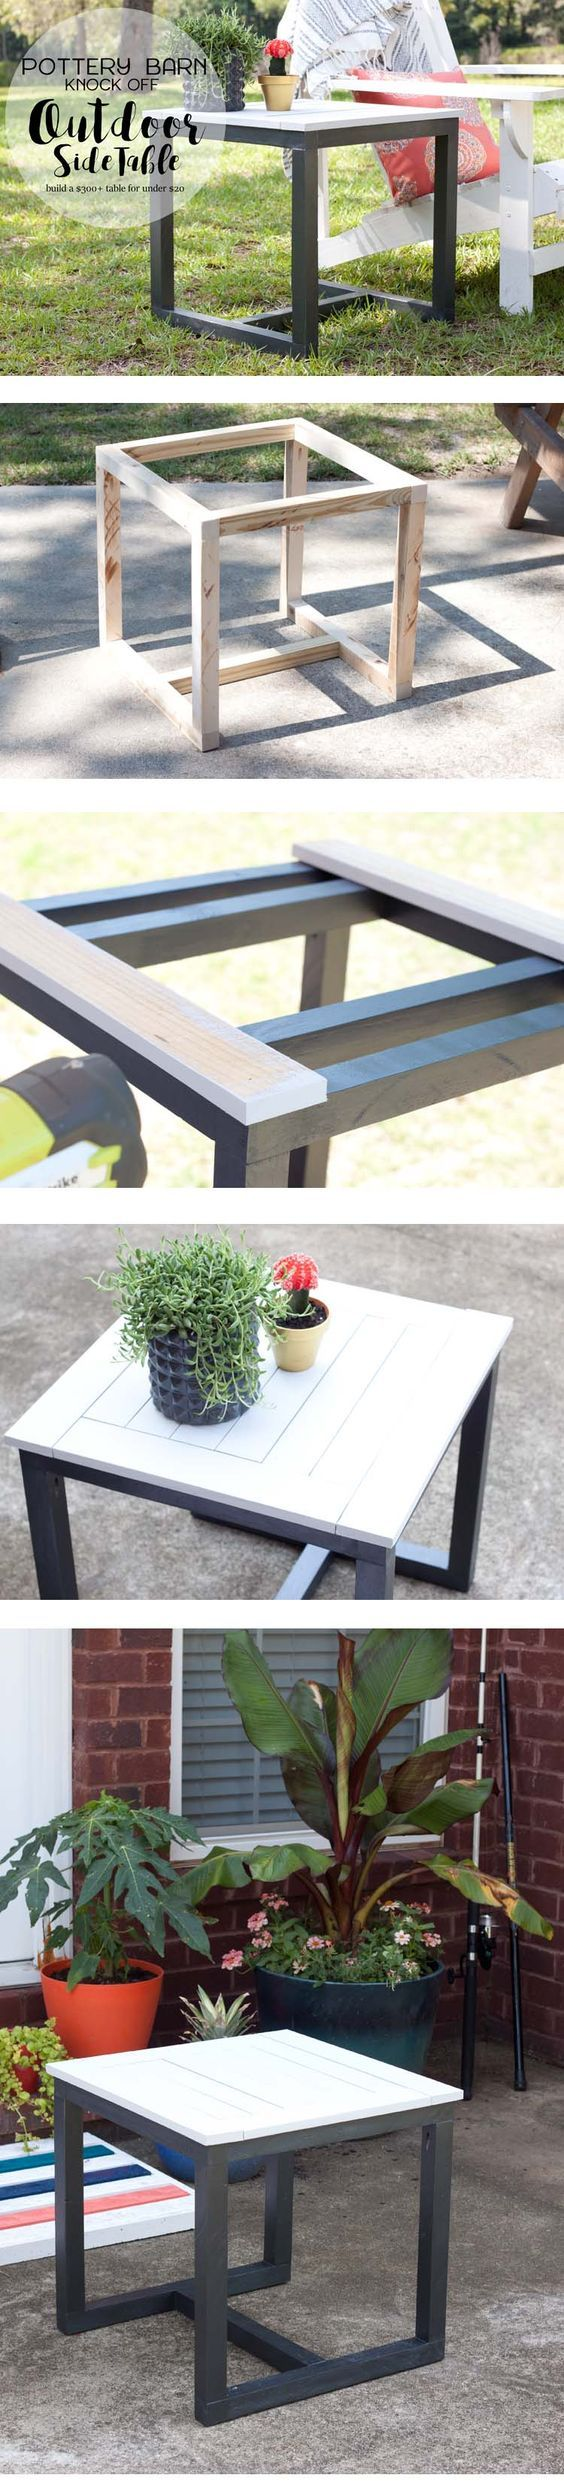 The Best Homemade Outdoor Furniture Ideas On Pinterest - Homemade outdoor furniture